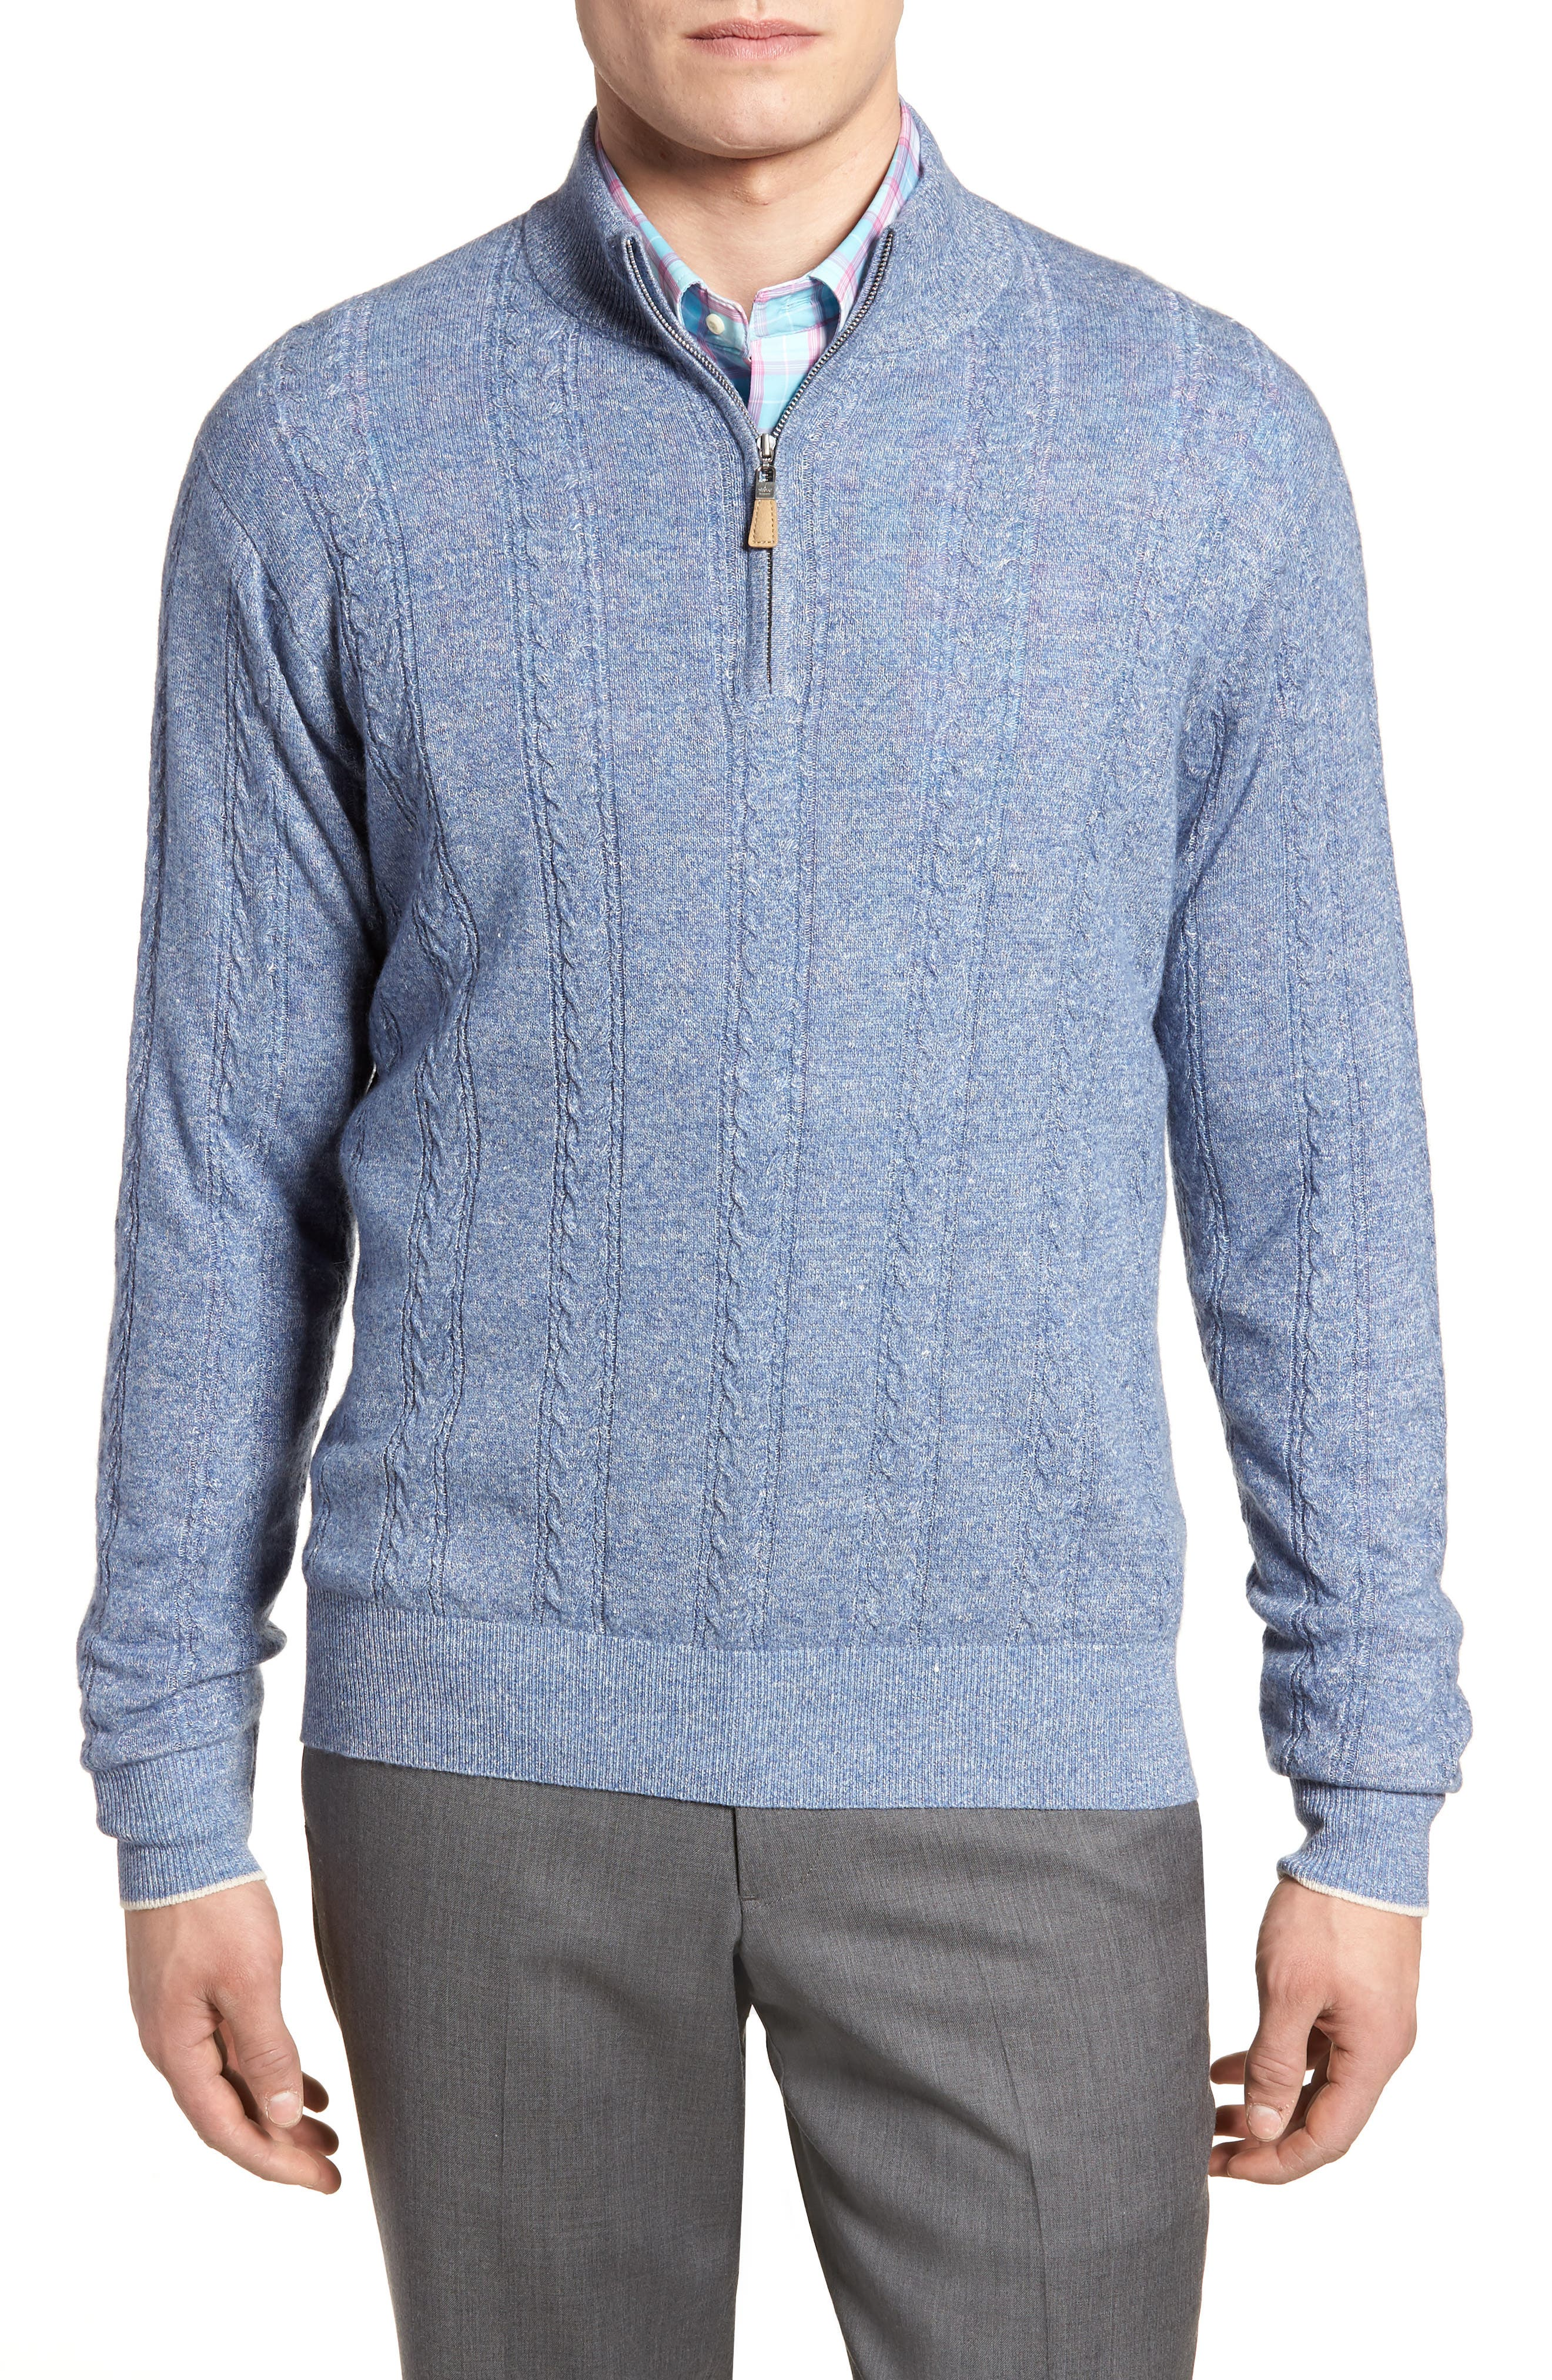 Crown Fleece Cashmere & Linen Quarter Zip Sweater,                             Main thumbnail 1, color,                             Atlas Blue